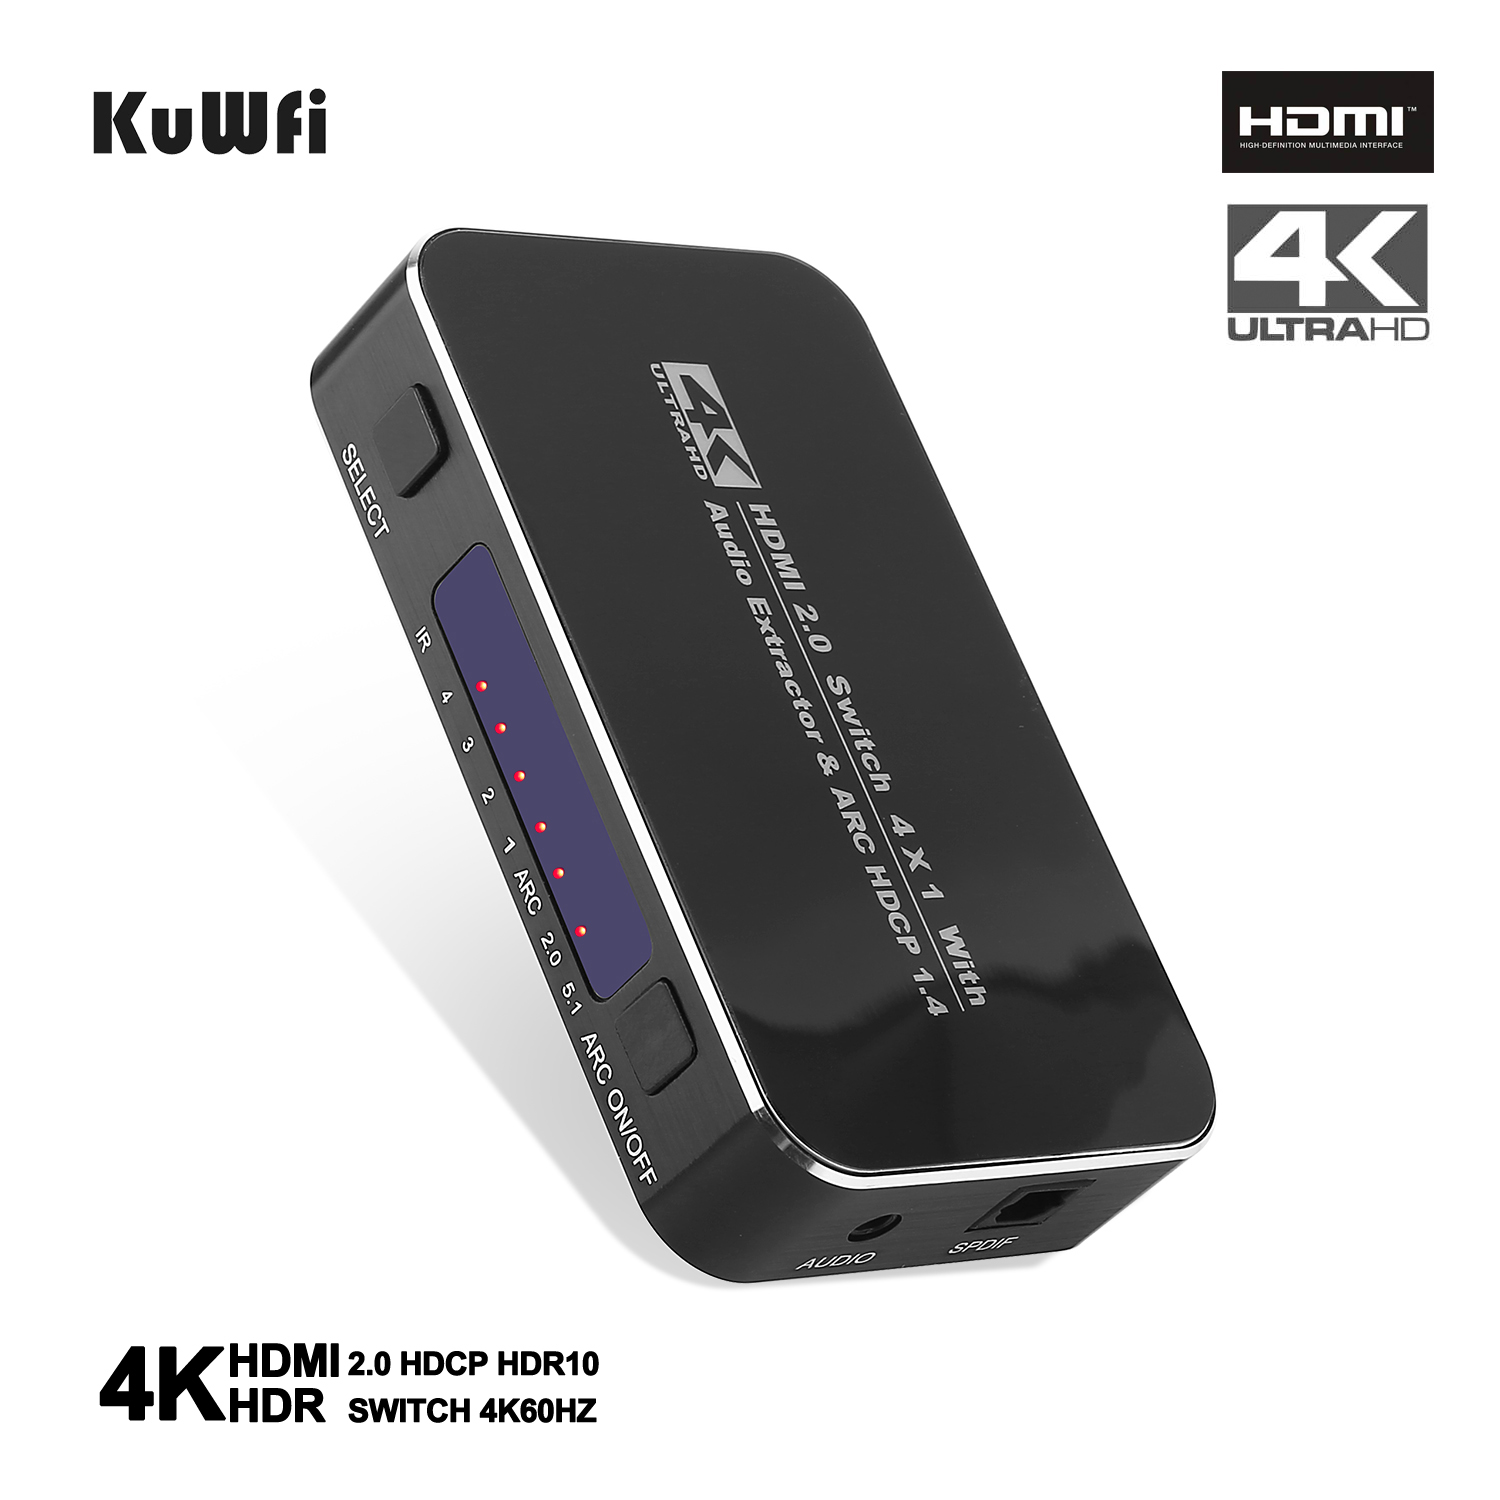 HDMI Splitter 4 Input 1 Output Adapter 4 Port HDMI Splitter Cable Switch Switcher 4K 2.0 Audio Extractor ARC & IR Control